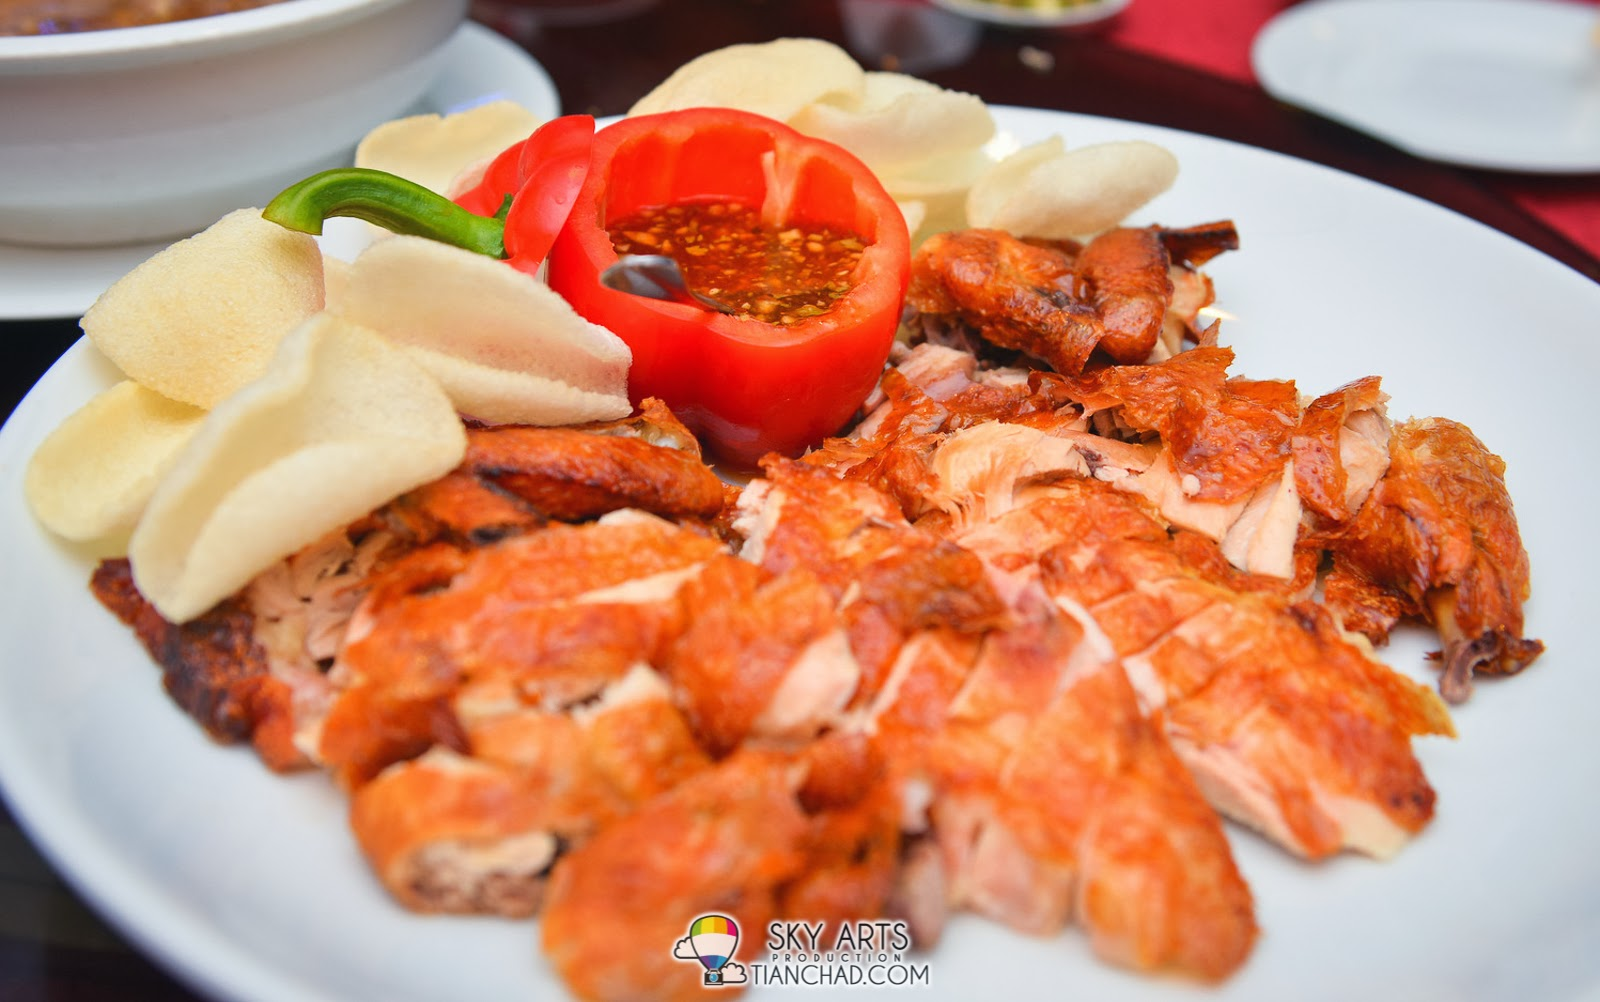 辣梅醬脆皮鸡与虾片 Crispy Roasted Chicken with Spicy Plum Sauce and Prawn Cracker @ Phoenix Chinese Restaurant at Holiday Inn Glenmarie